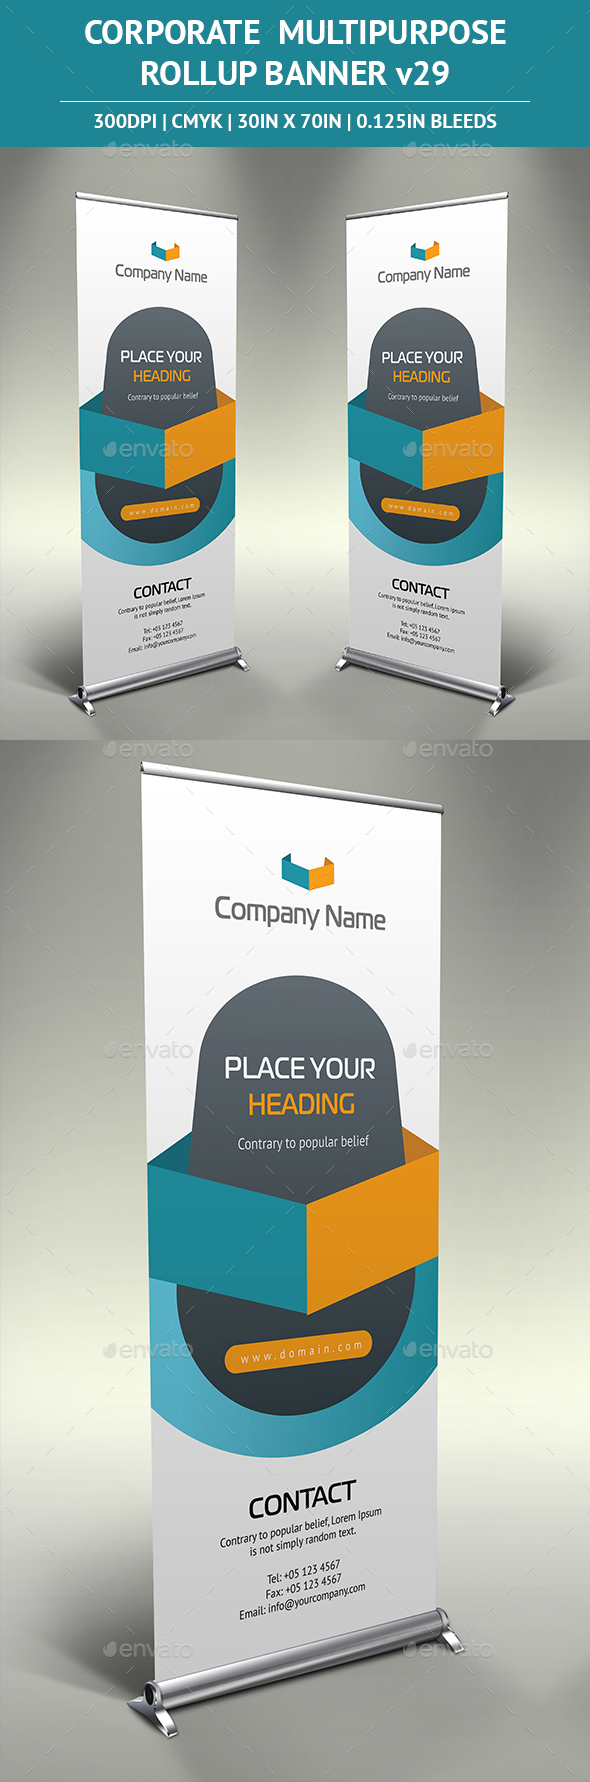 Rollup Banner vol29 - Signage Print Templates